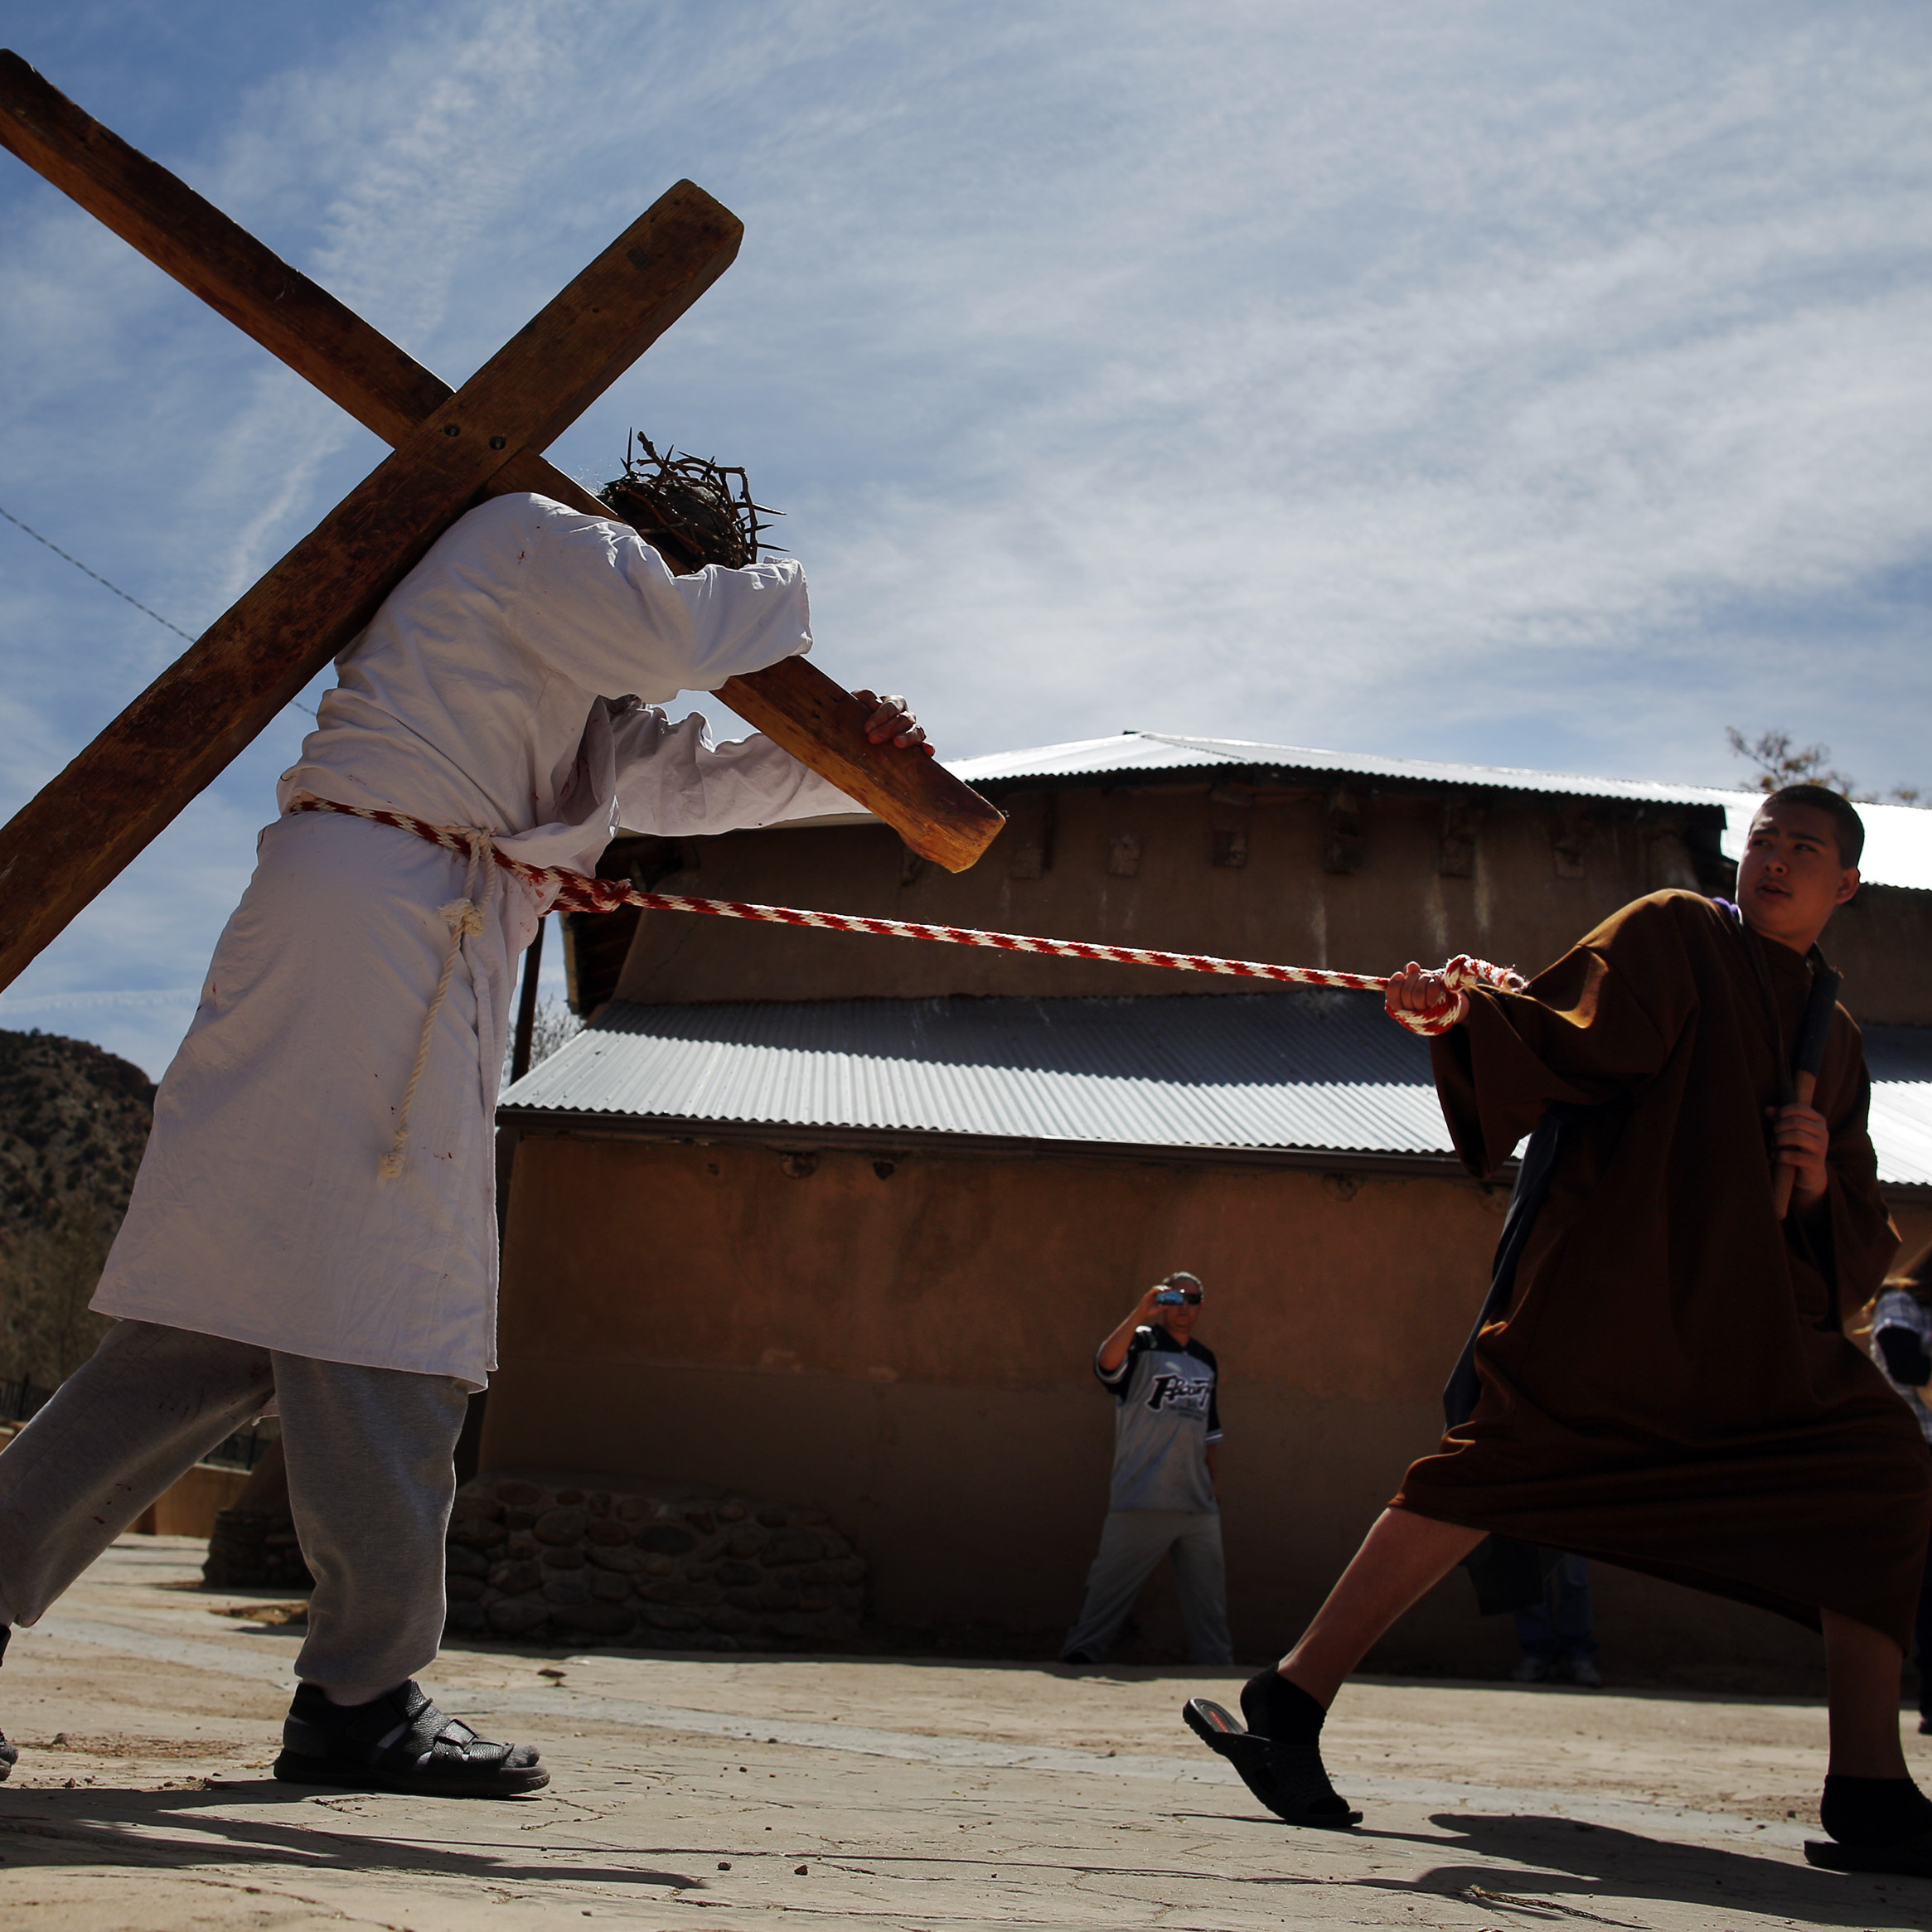 Students playing the roles of Roman soldiers lead a man playing the role of Jesus during a re-enactment of the Stations of the Cross at the Sanctuary of Chimayo in New Mexico on Thursday.